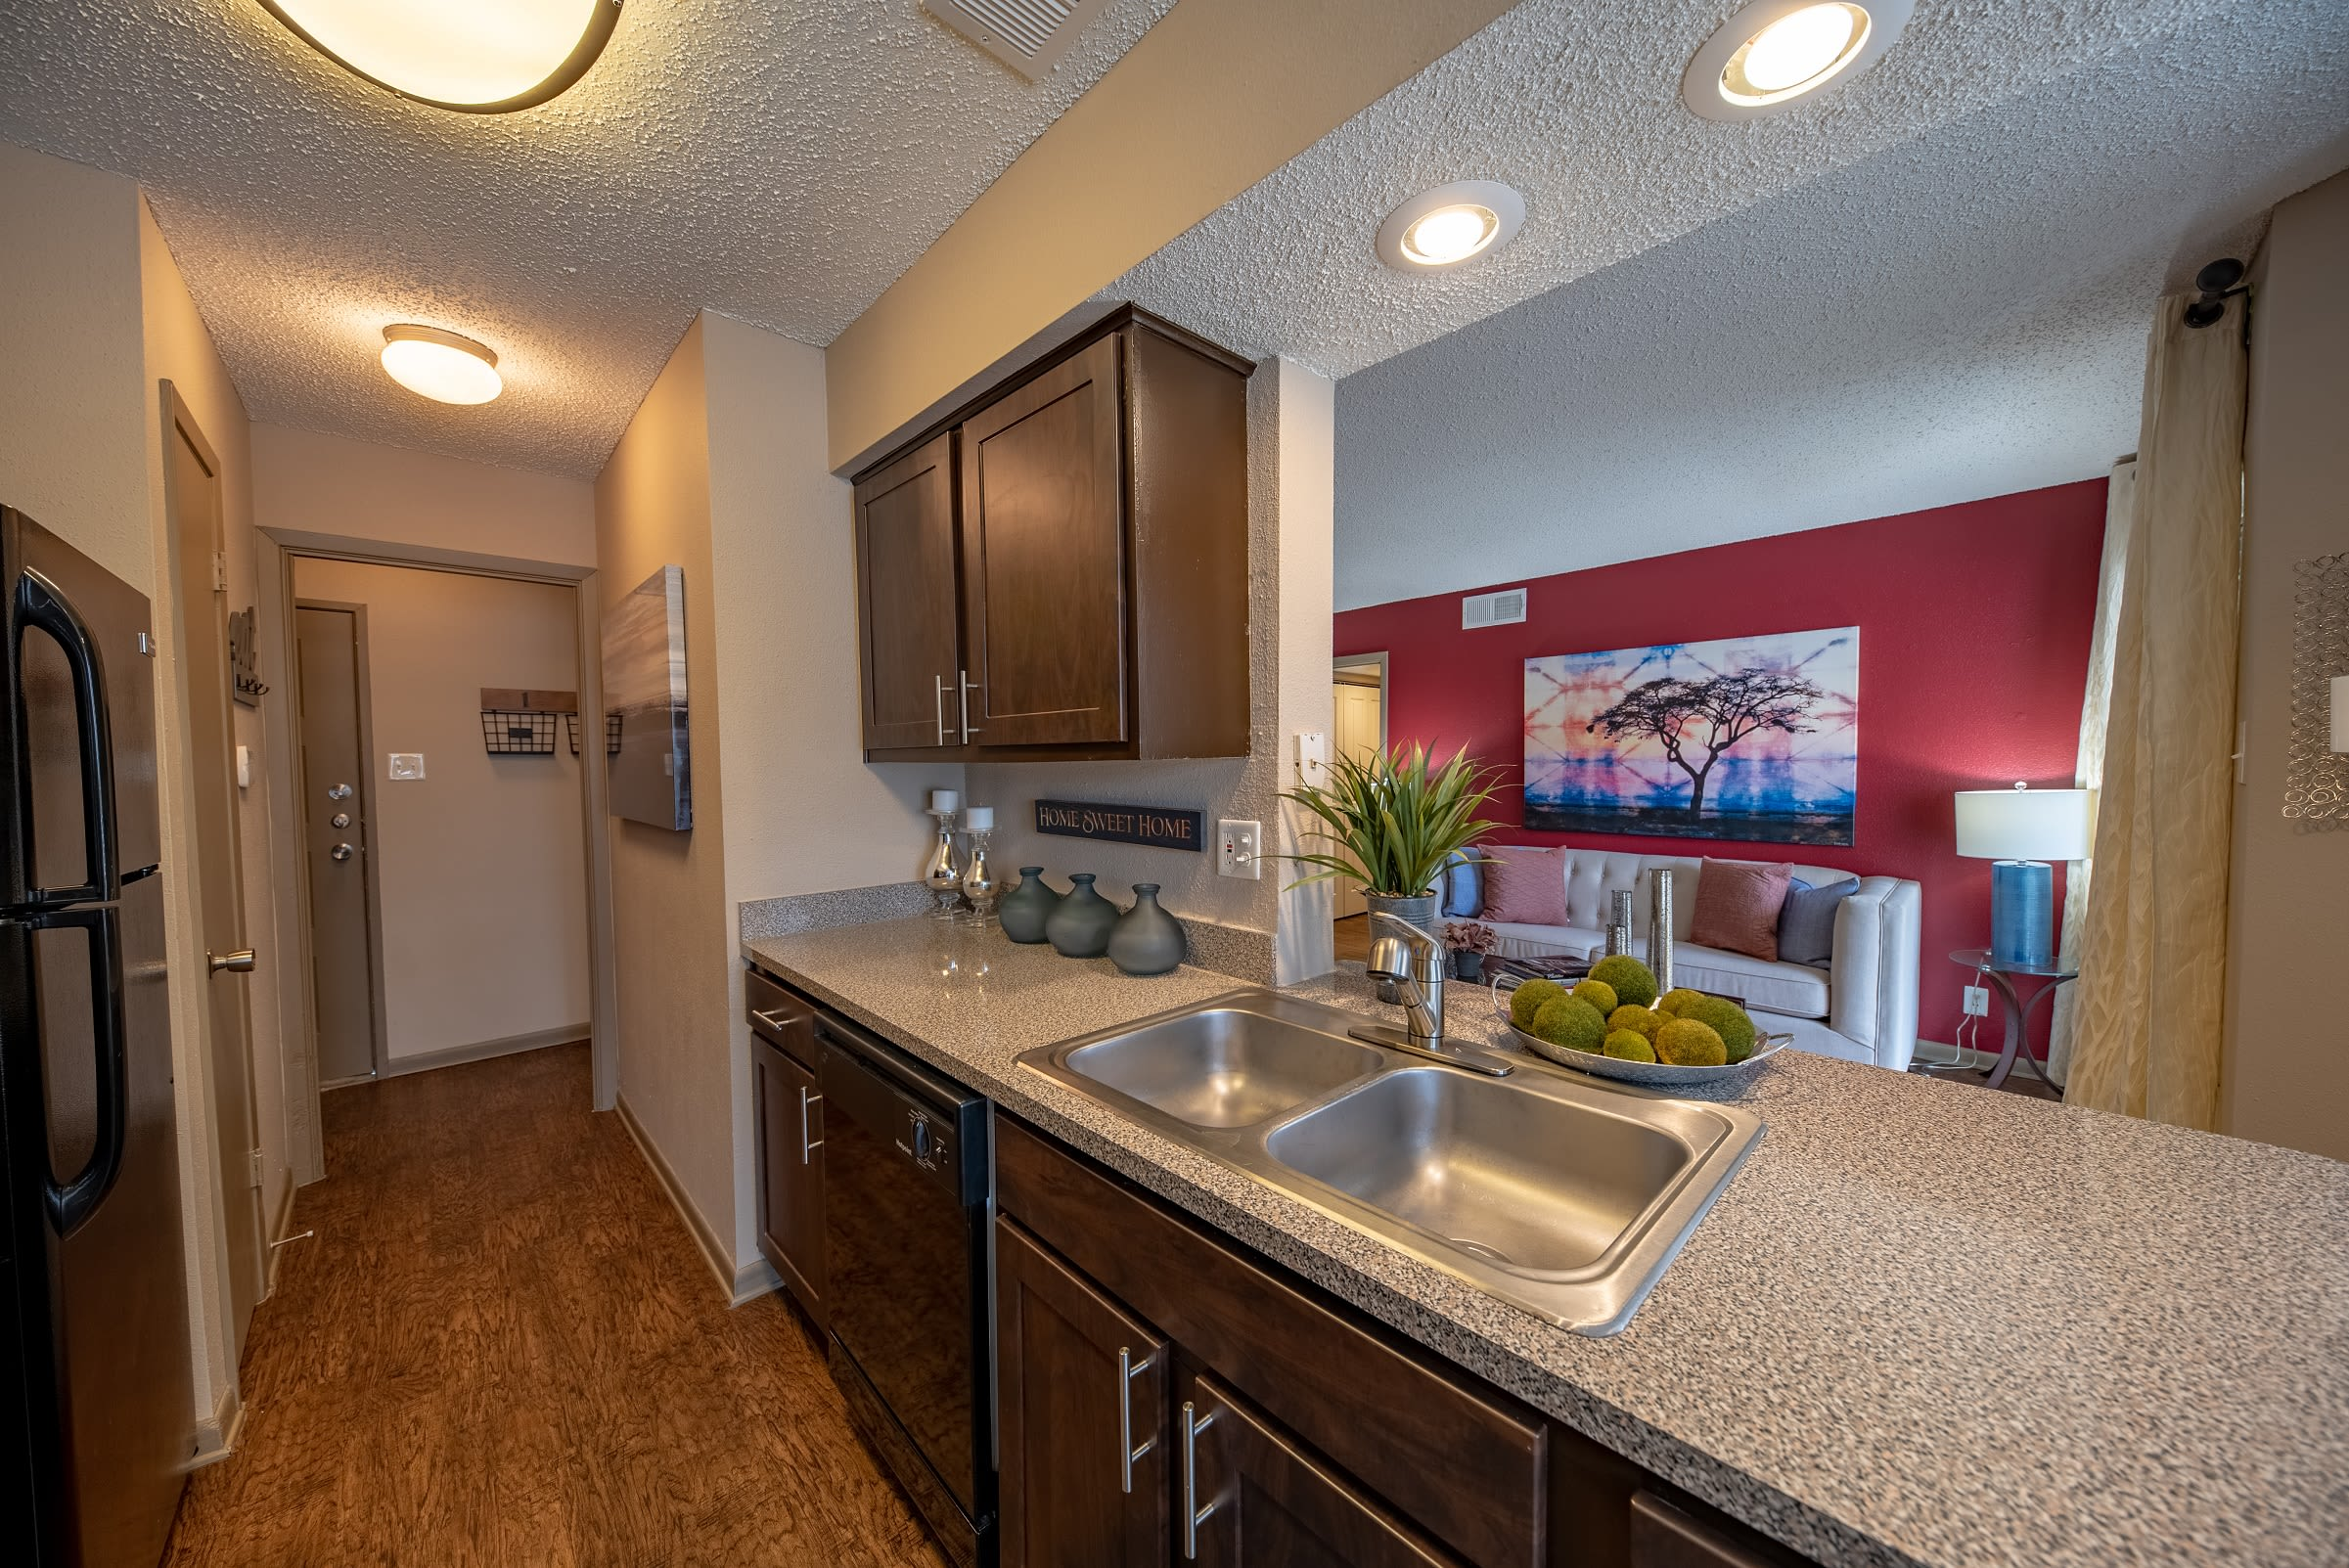 Clubhouse kitchen and sitting area view at Ridgeview Place in Irving, Texas